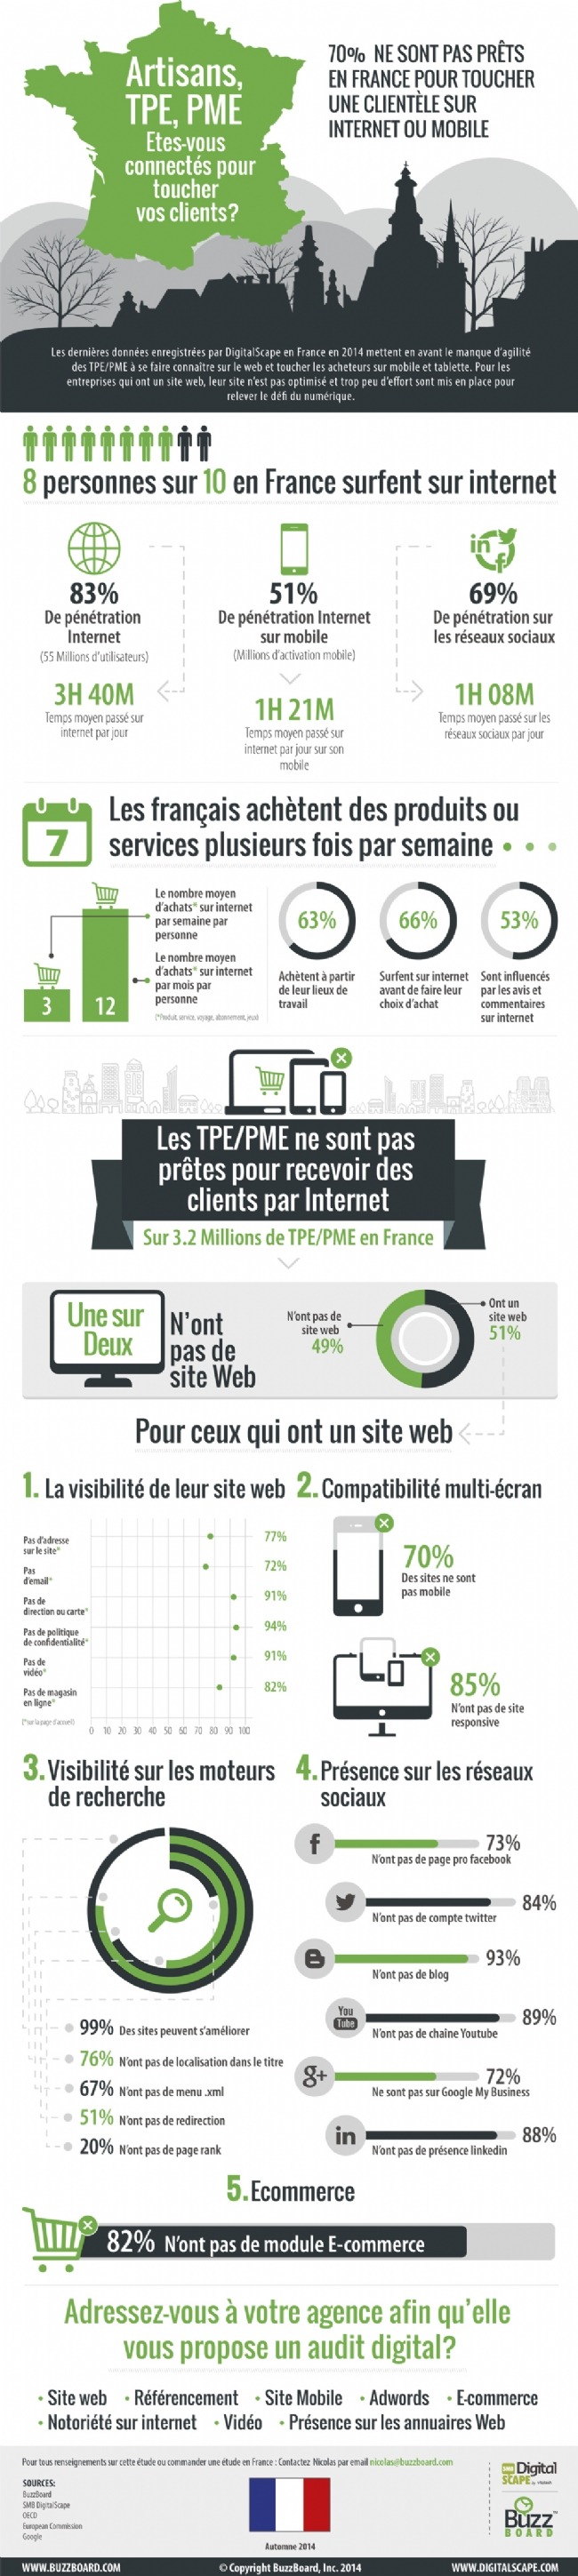 infographie-statistiques-internet-TPE-PME